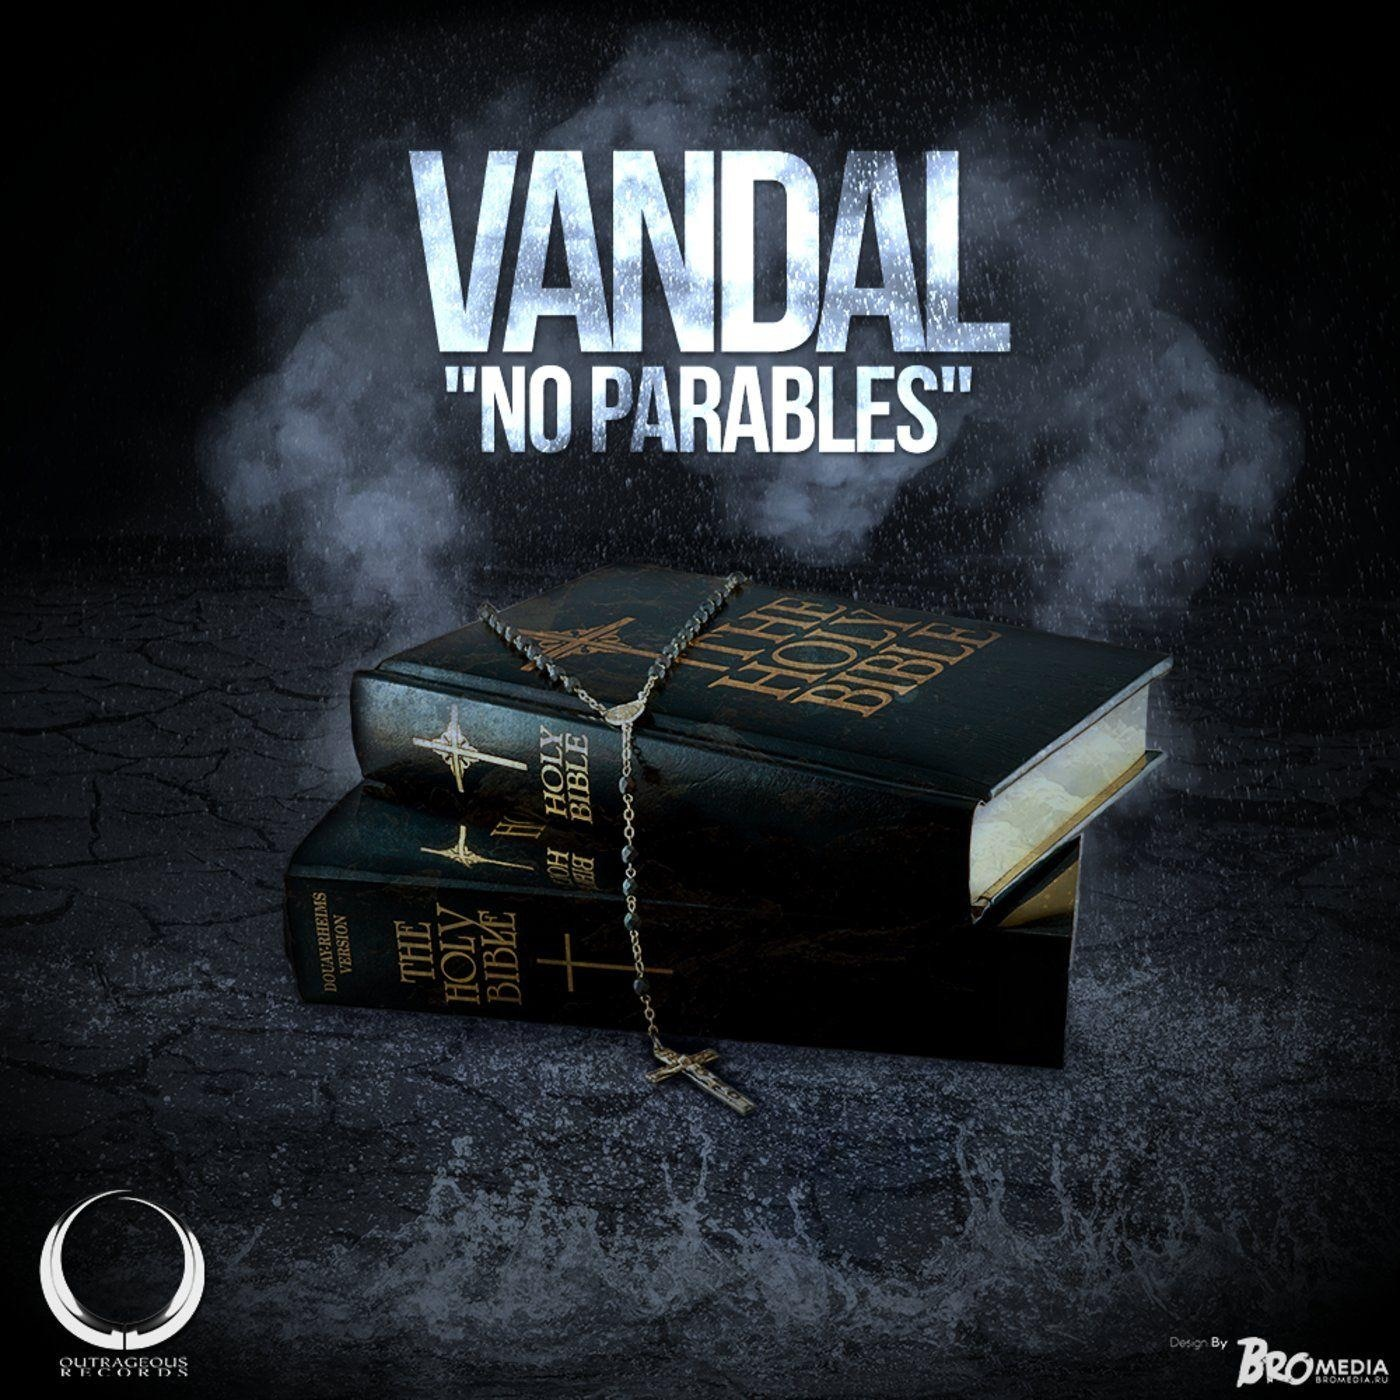 MP3 Songs Online:♫ One of the Last - Vandal album No Parables. Hip-Hop/Rap,Music listen to music online free without downloading.